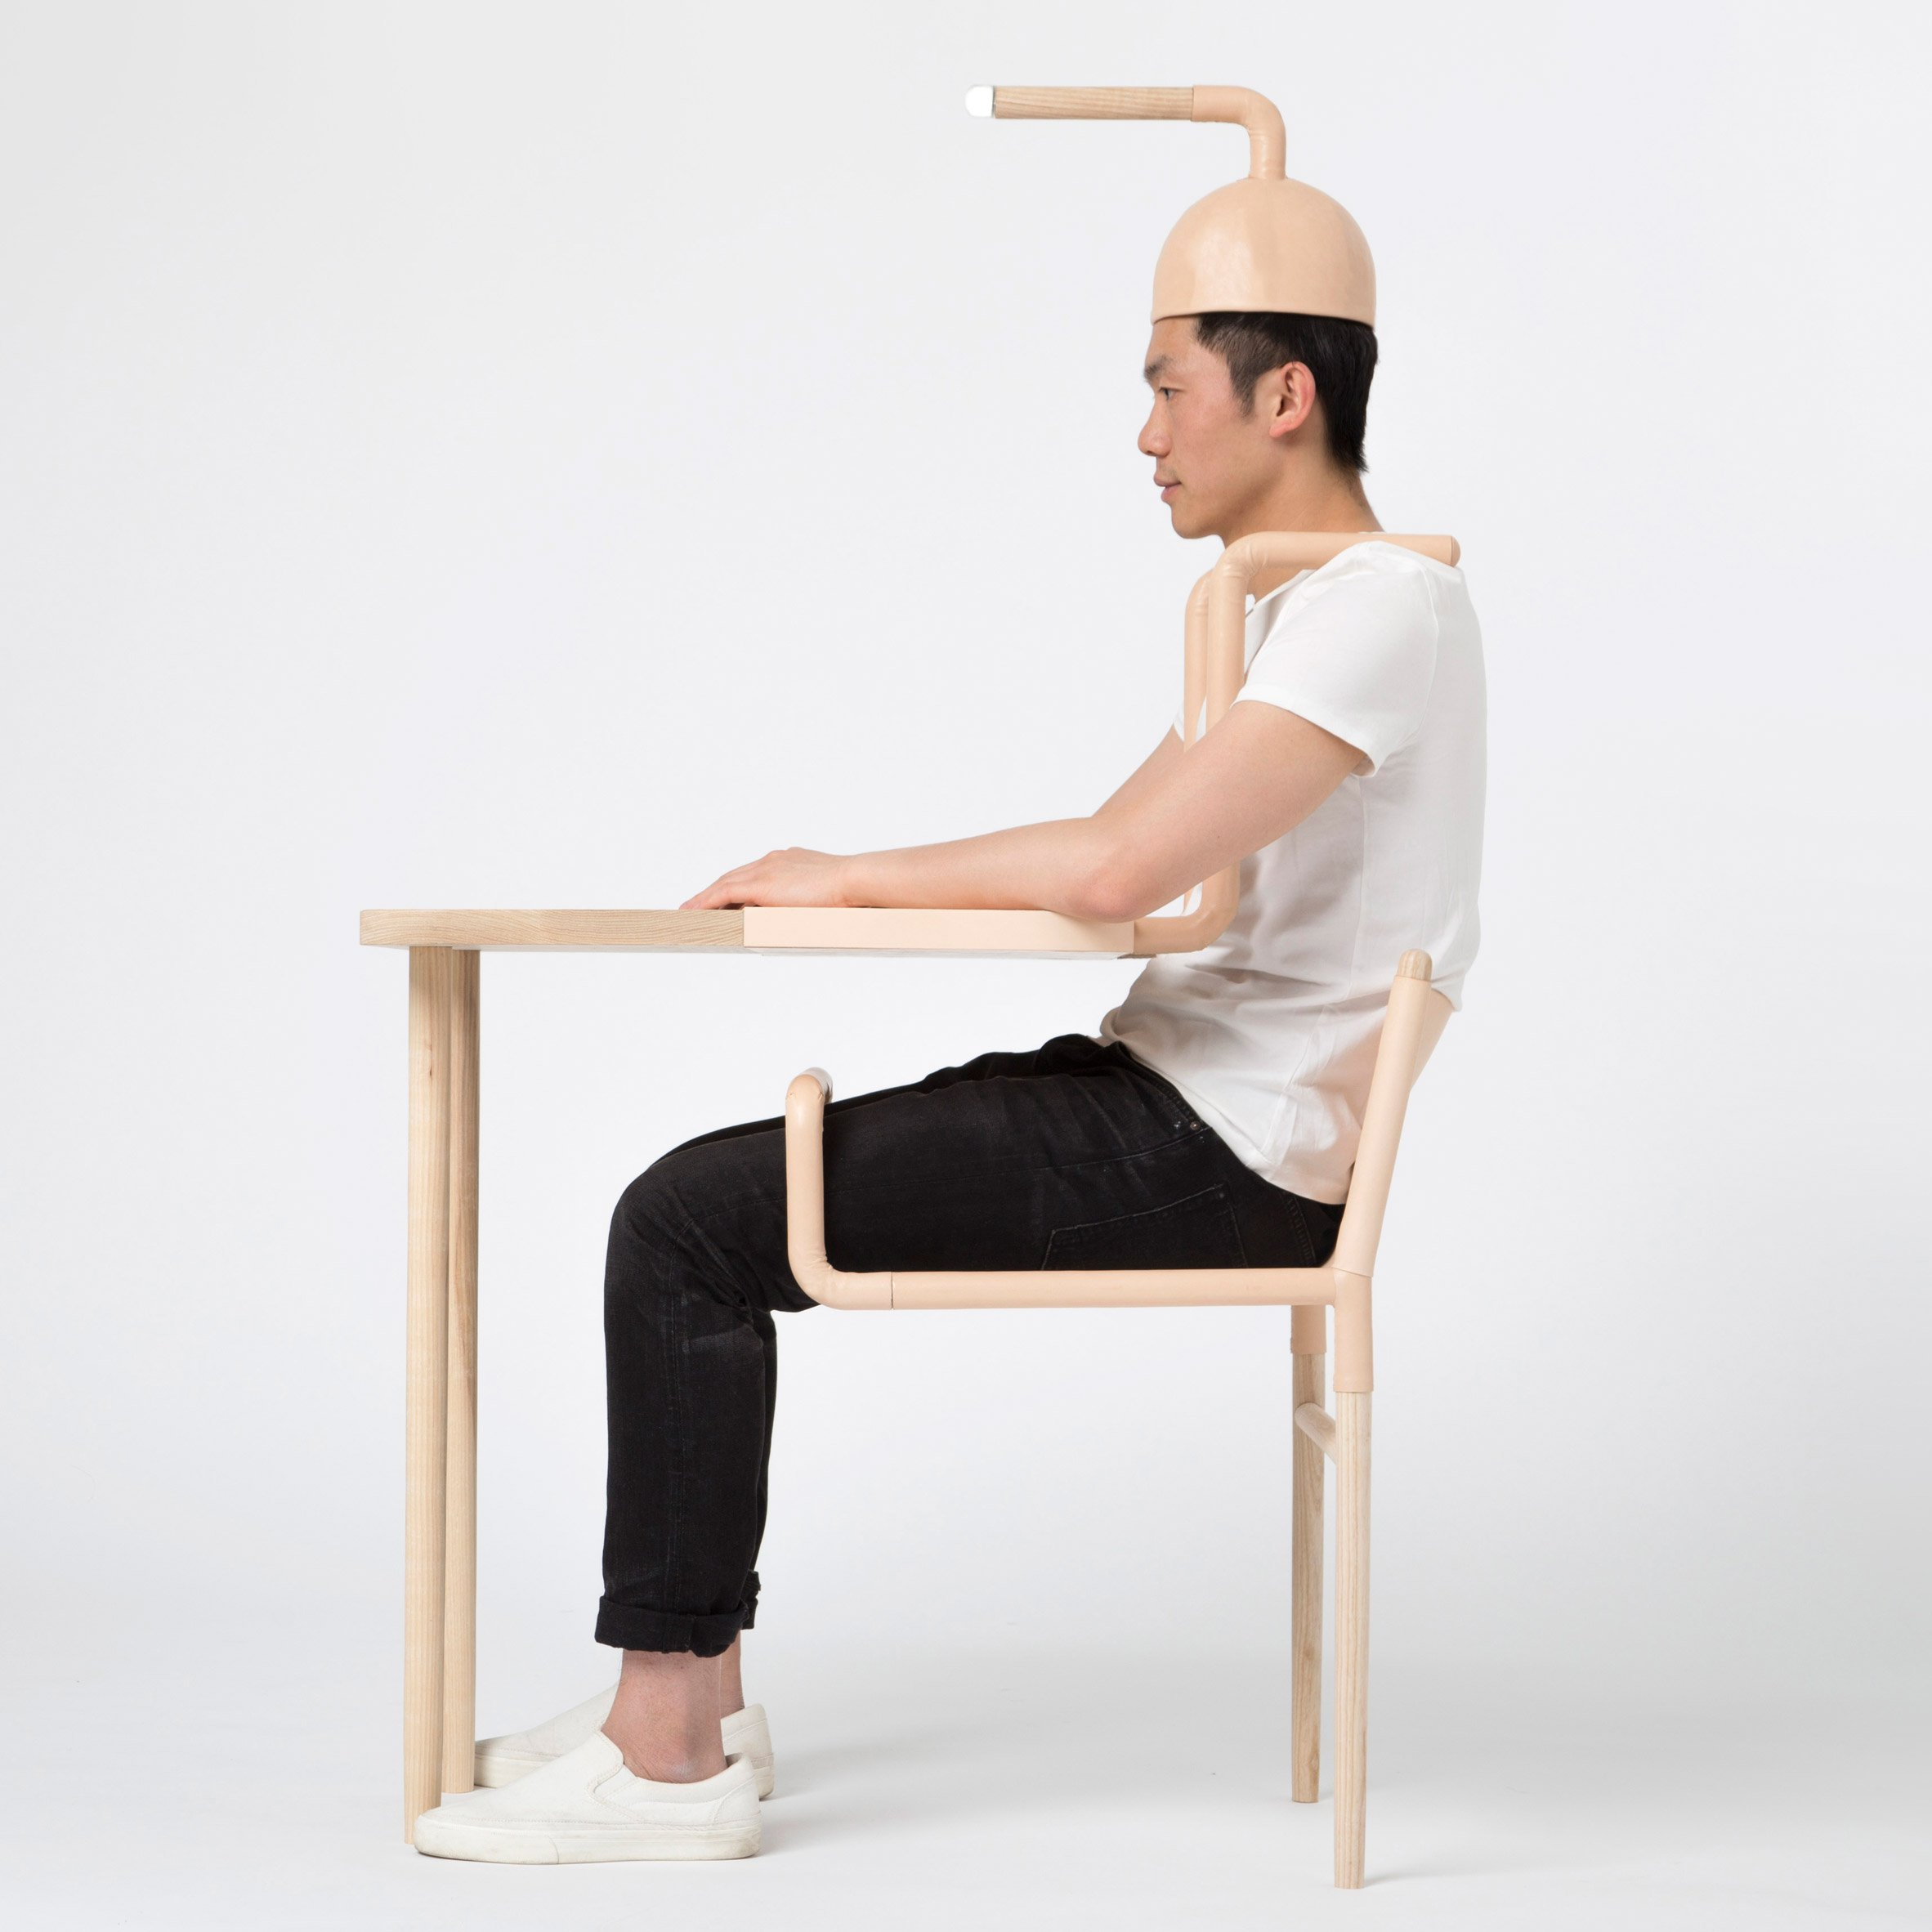 Graduate Xiang Guan Designs Furniture That Only Works When A Human Is Present